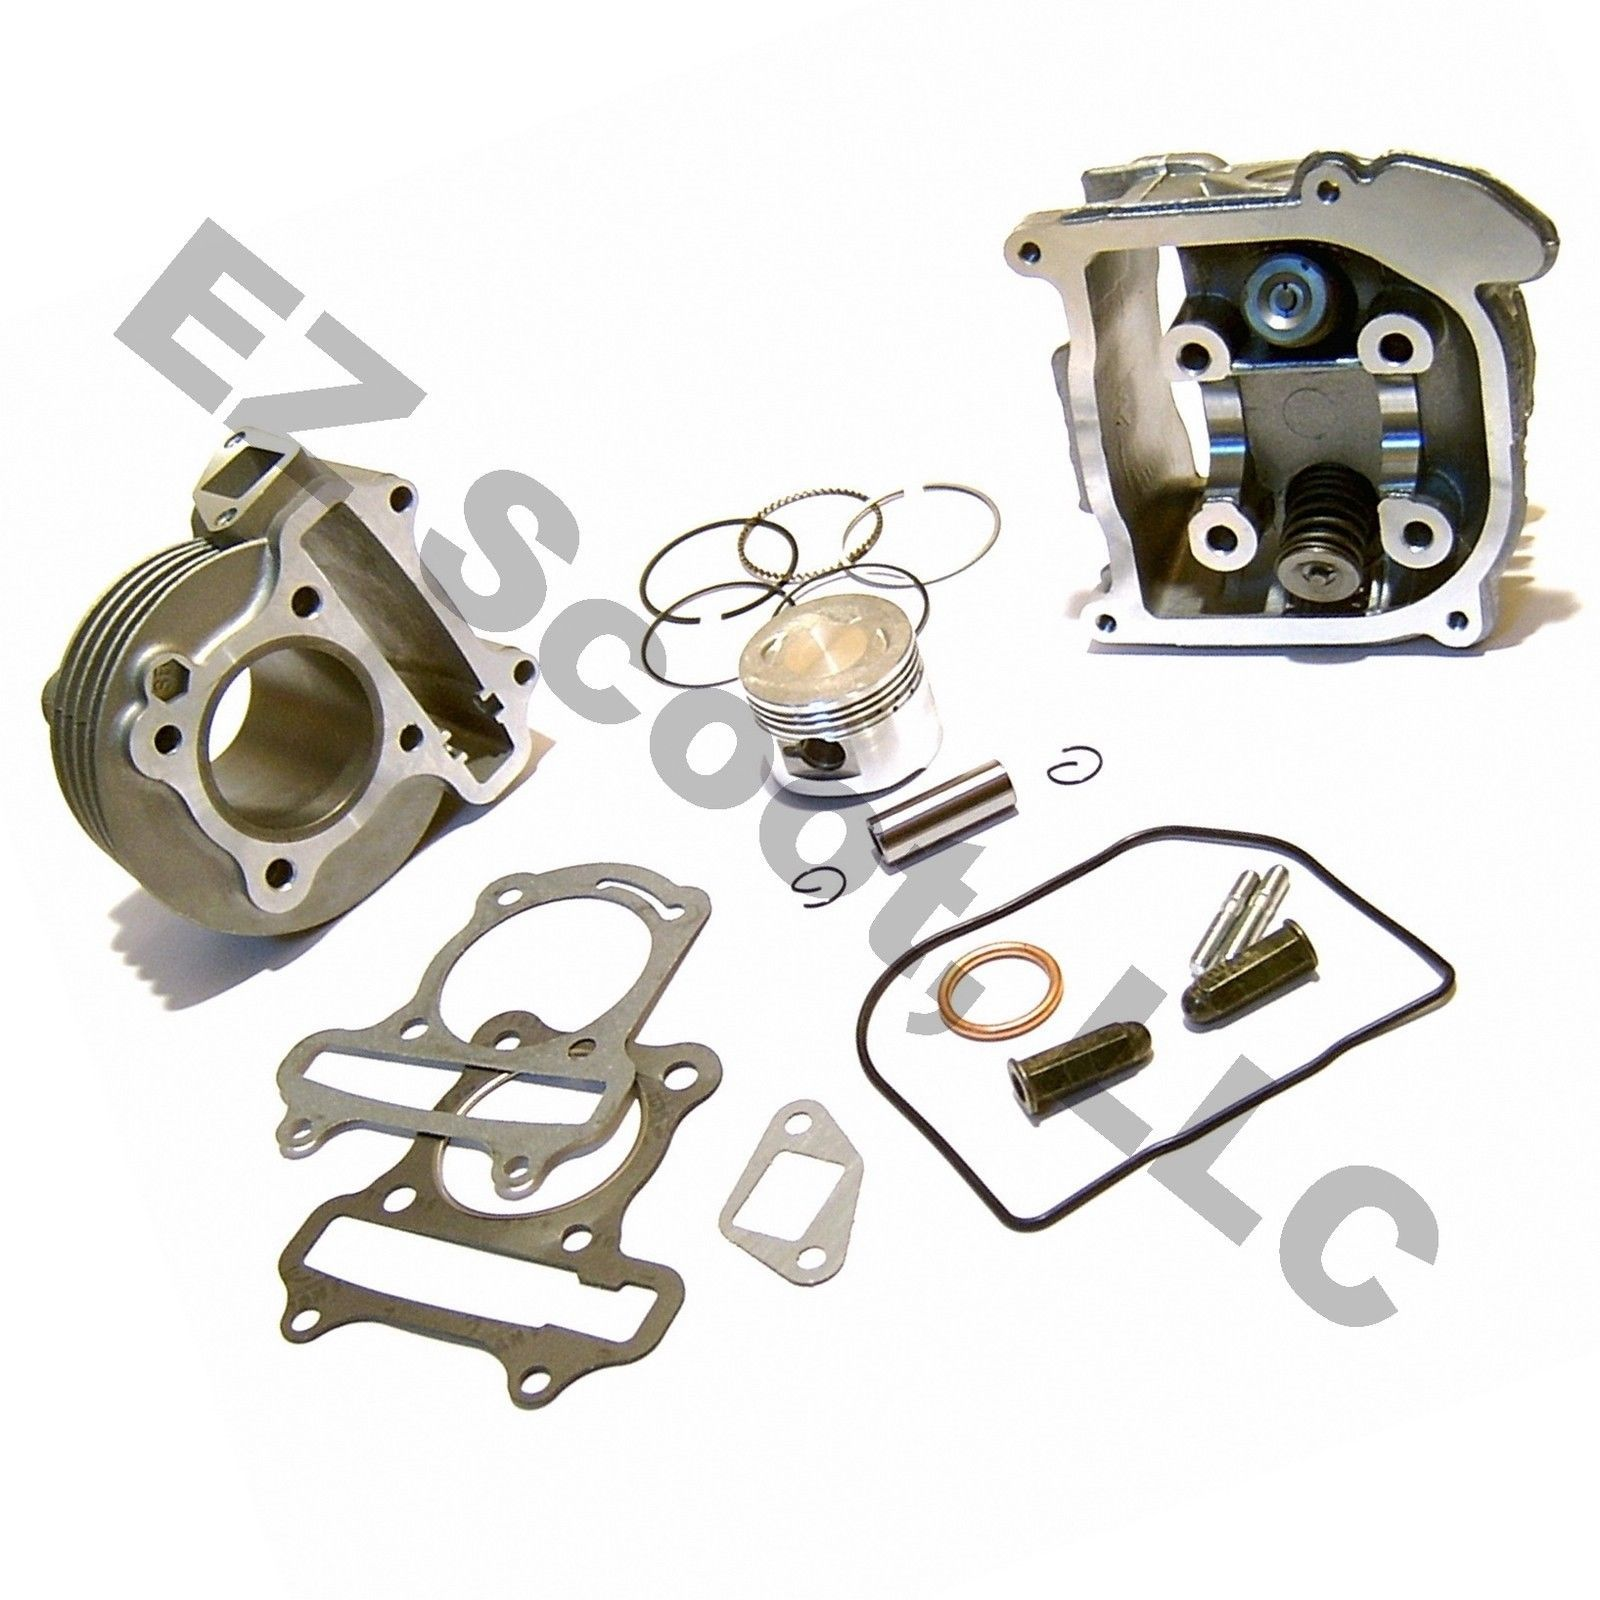 Details about HIGH PERFORMANCE CYLINDER TWLP KIT 80cc 47mm